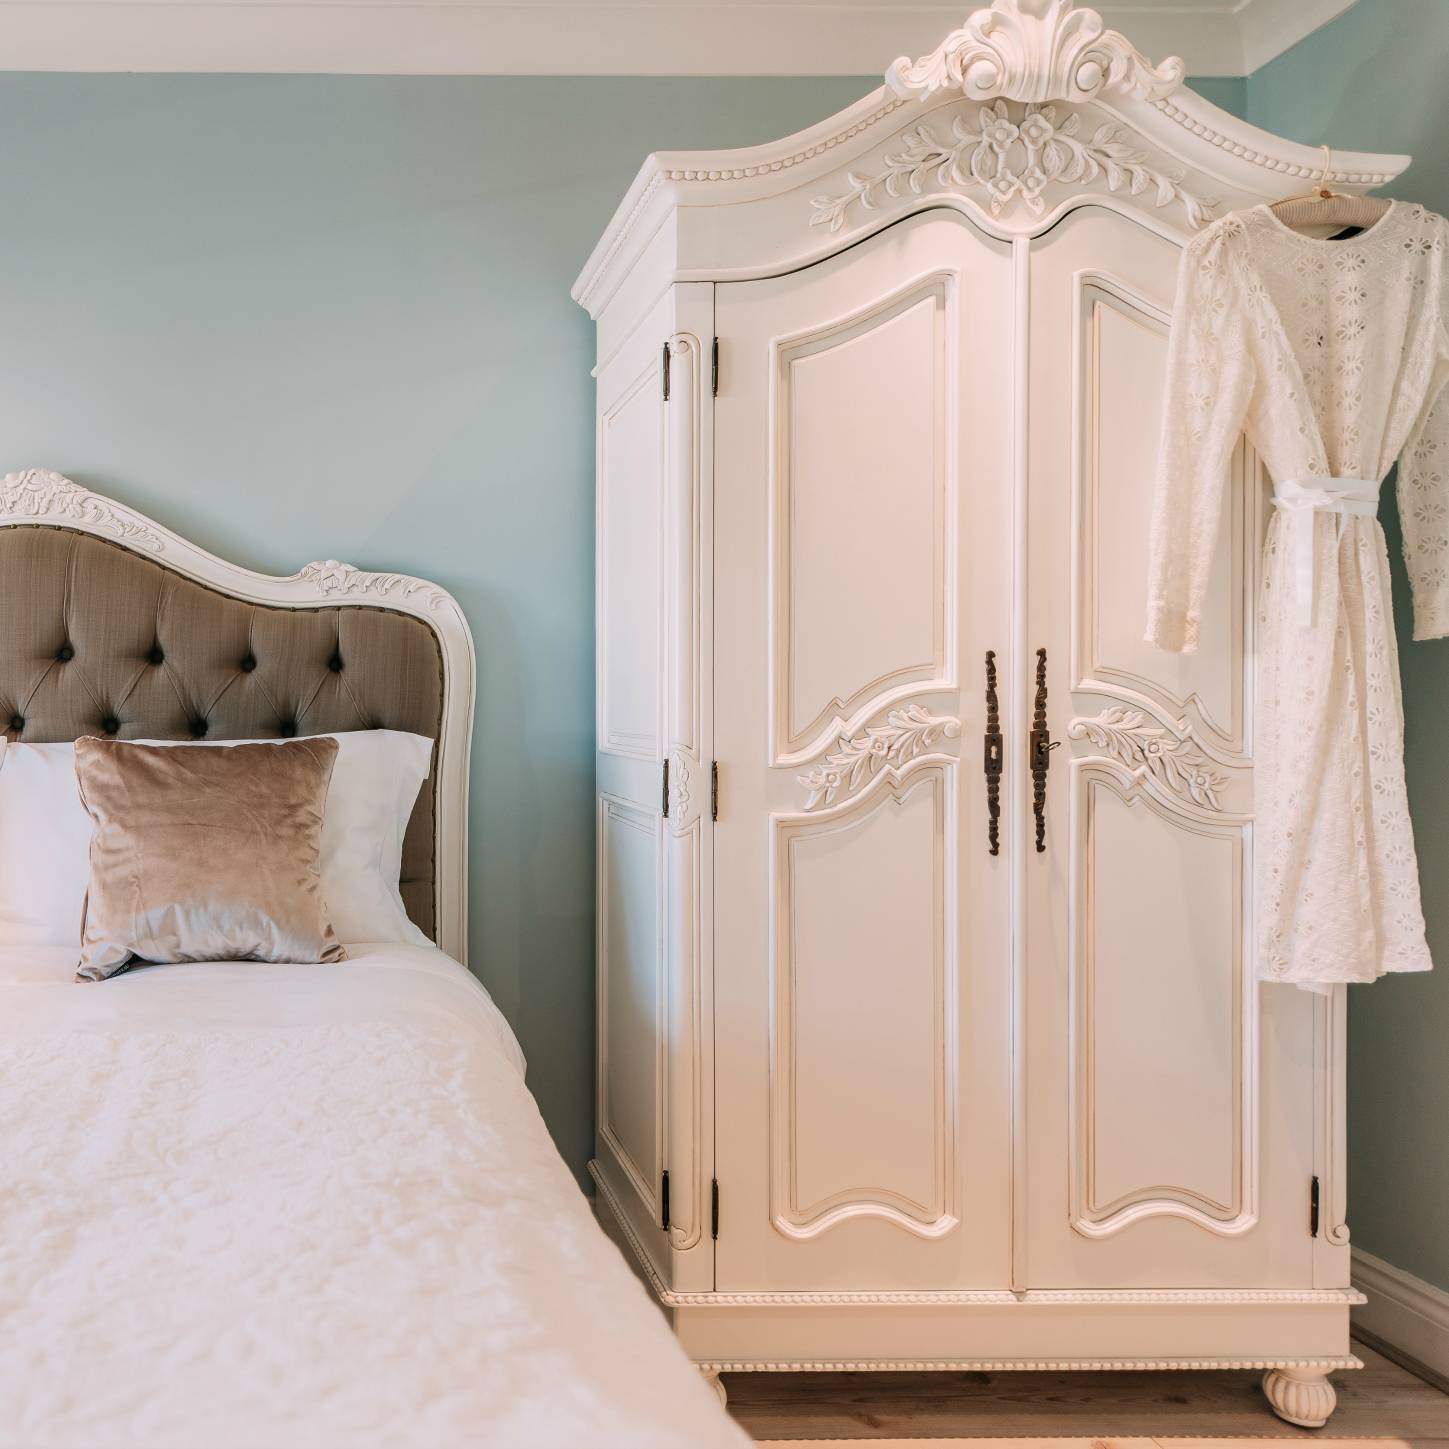 French White Hand Carved Double Armoire Wardrobe Furniture - La pertaining to French Armoire Wardrobes (Image 7 of 15)